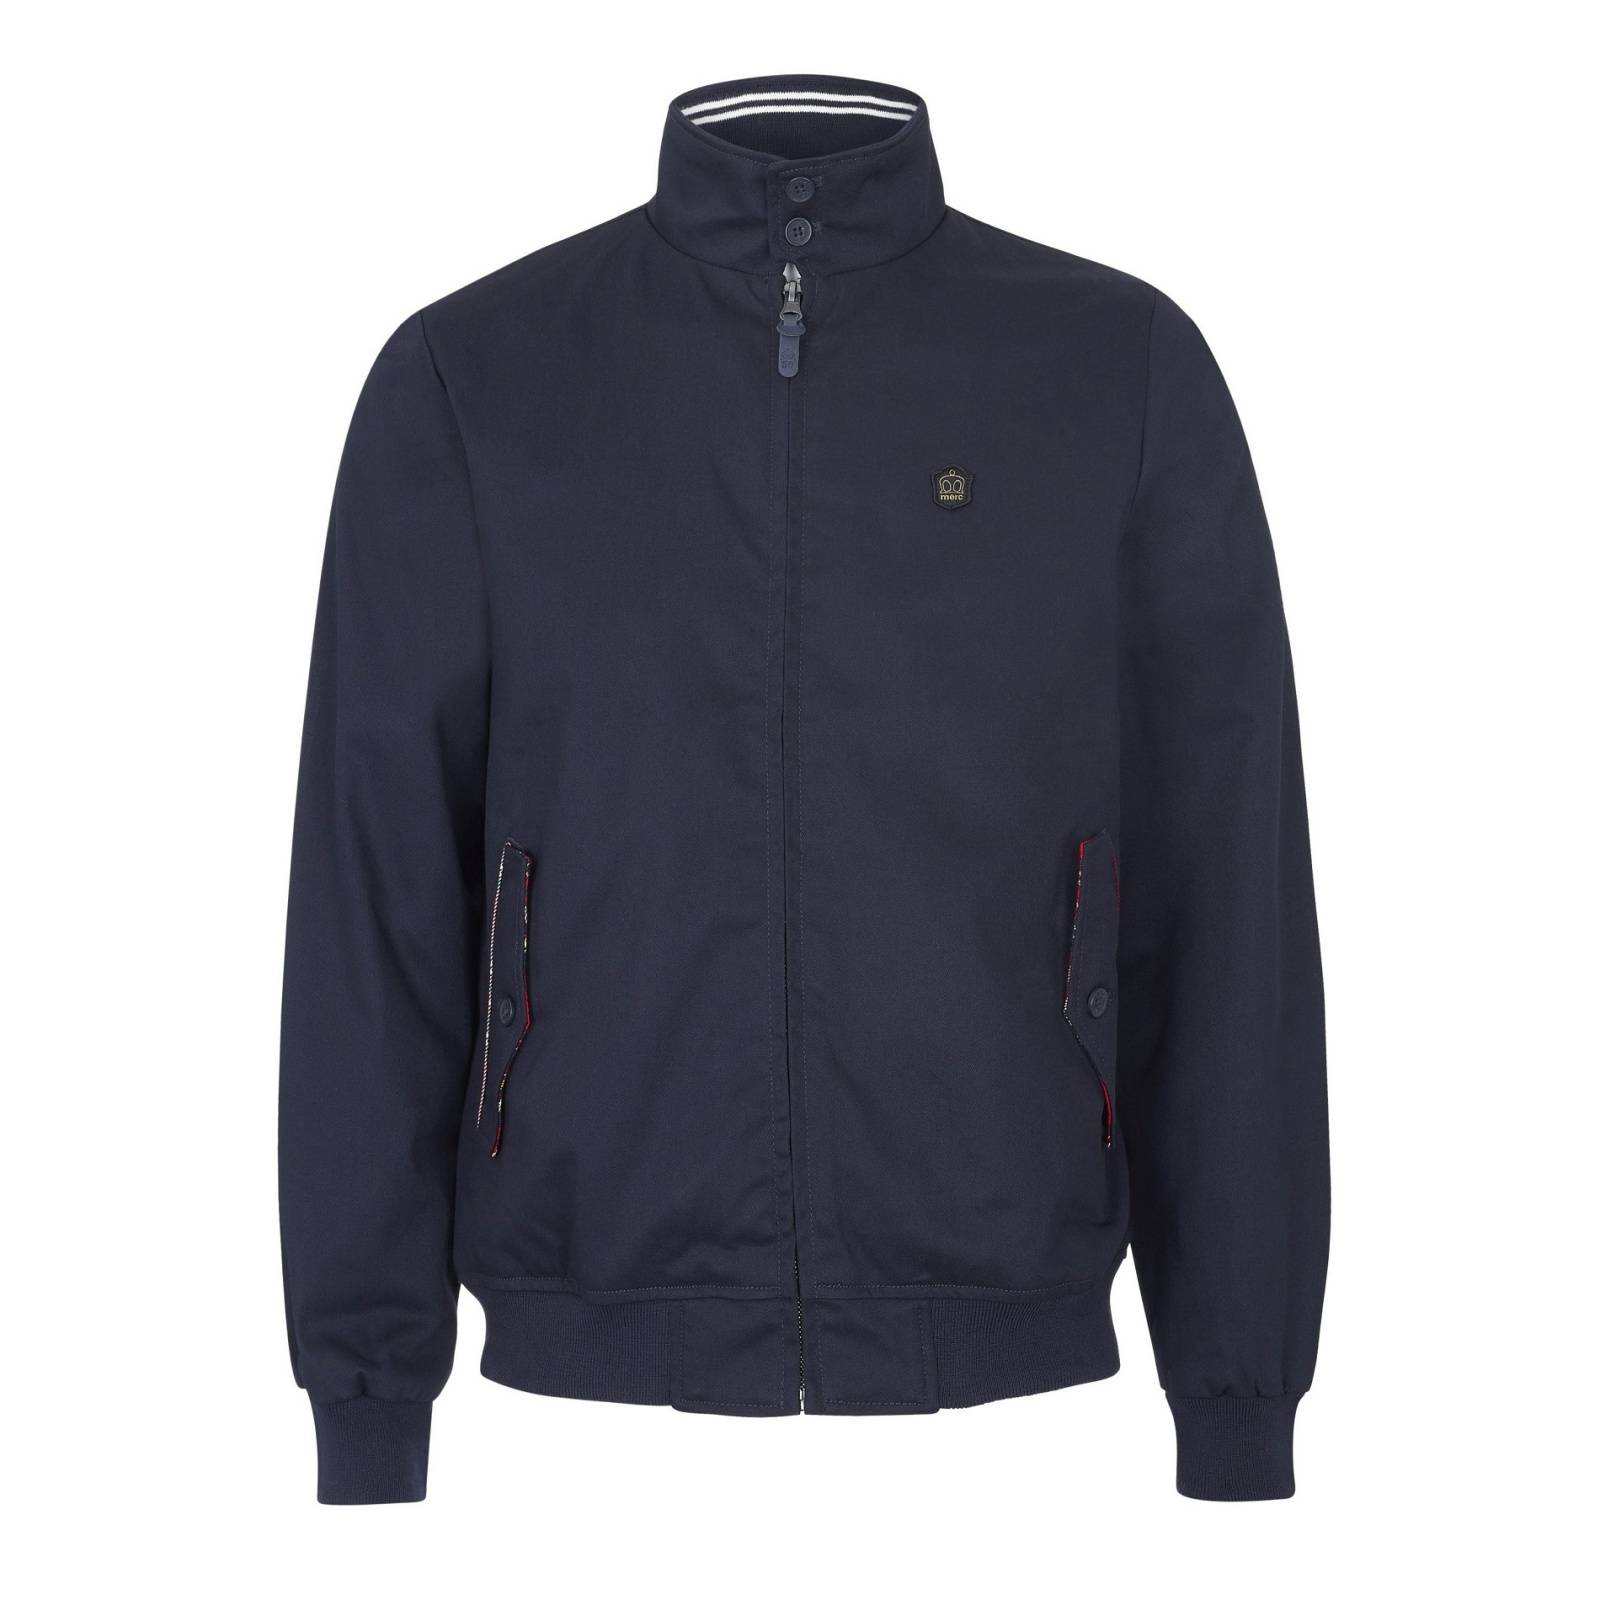 Куртка Harrington Fifty от MercLondon